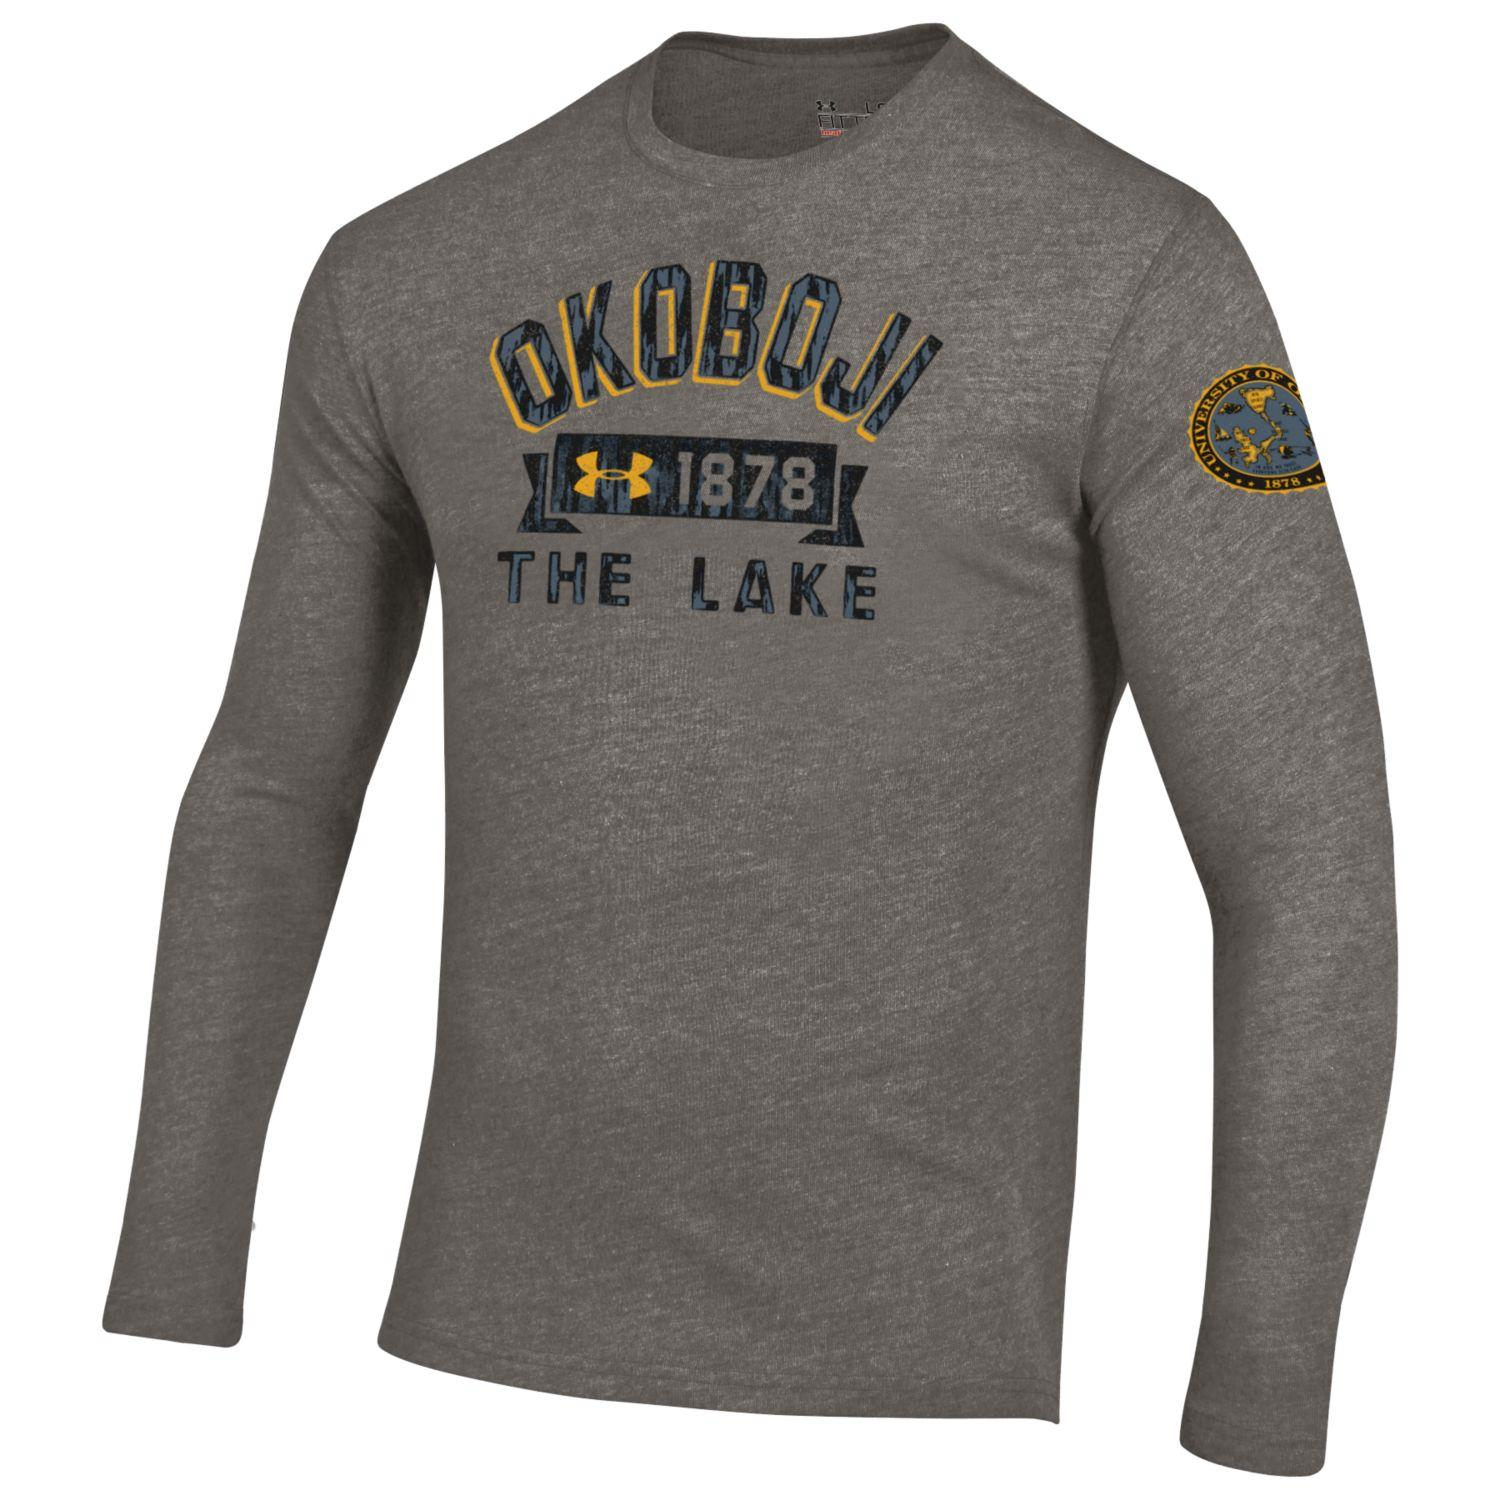 """The Lake"" Triblend Long Sleeve Tee - Legacy Grey"